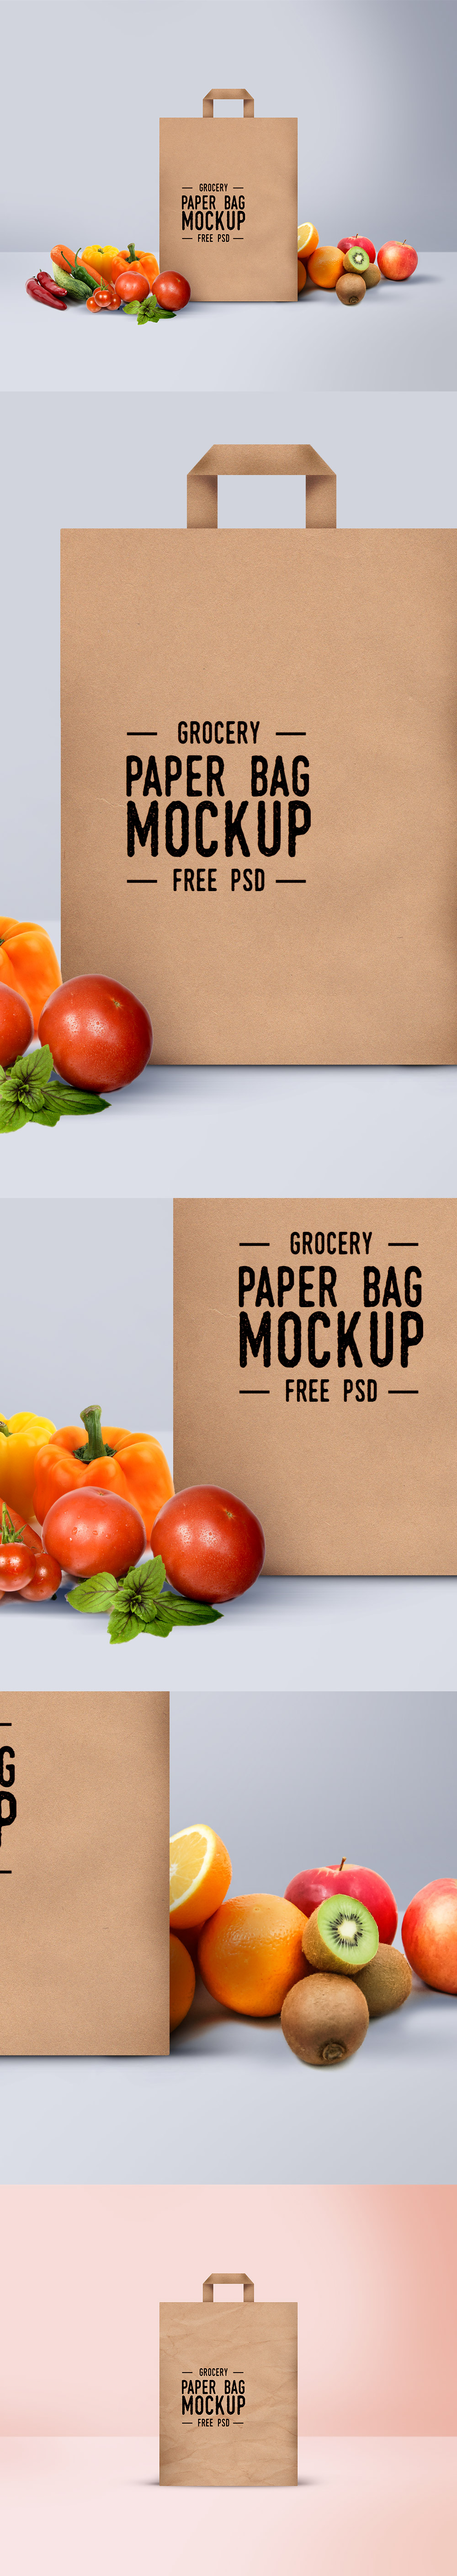 Free Shopping Paper Bag Mockup (16.1 MB) | Graphics Fuel | #free #photoshop…